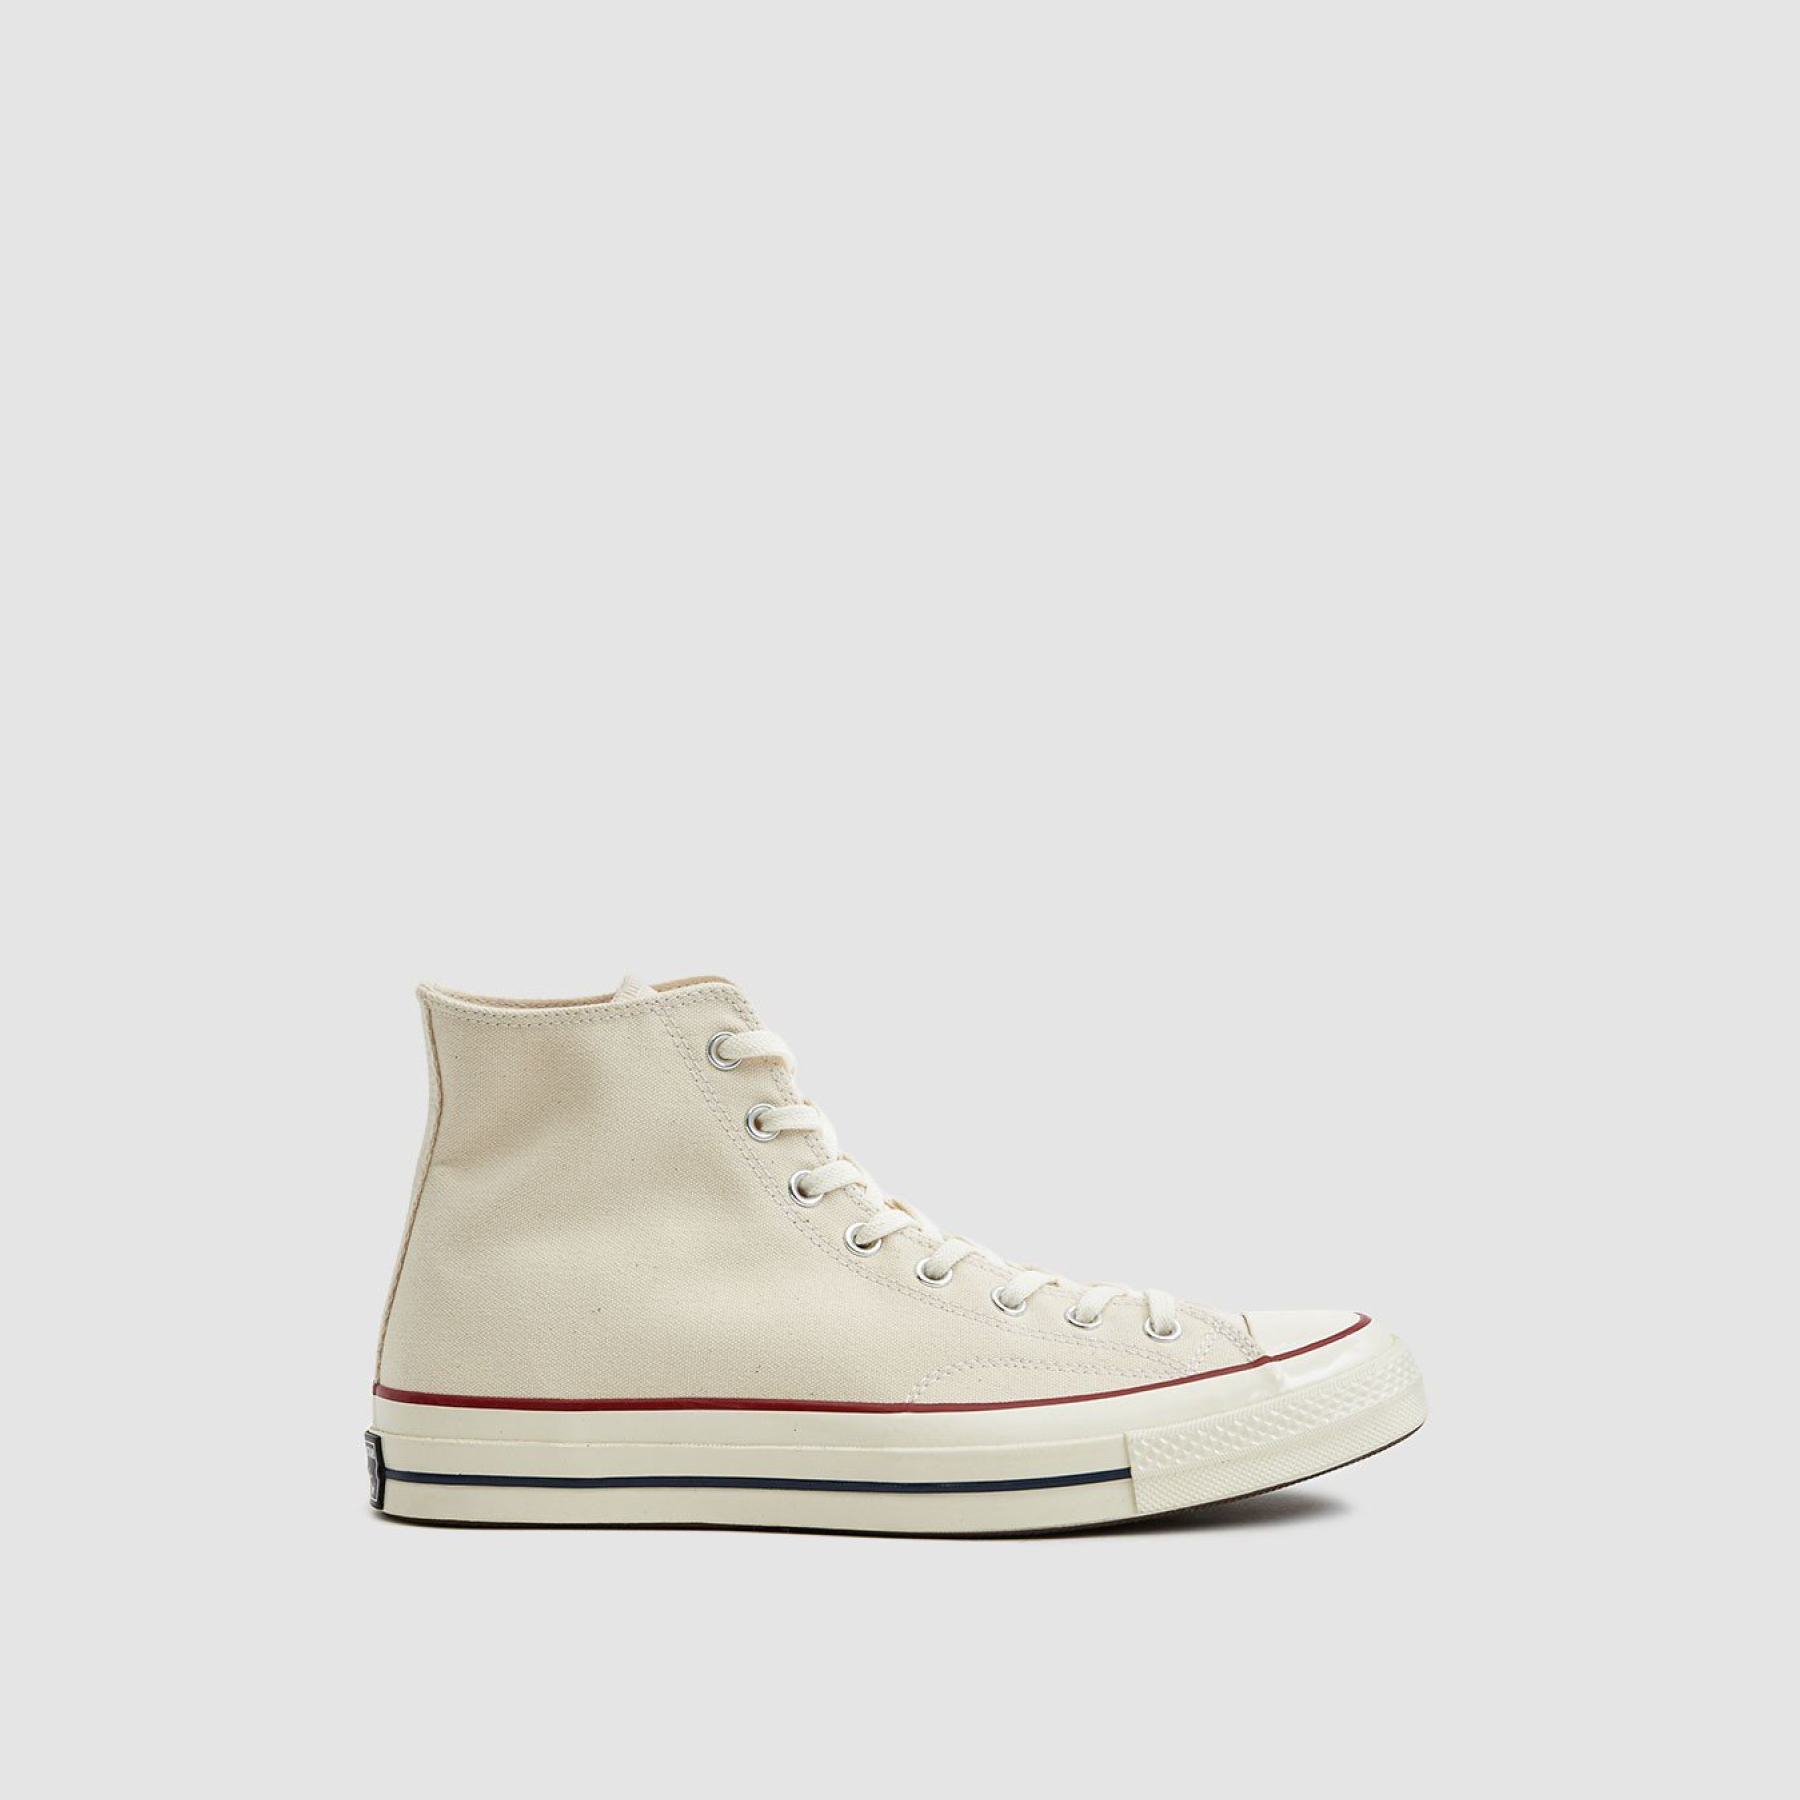 ALL-SORTS-OF-WHITE-CHUCK-TAYLORS-CONVERSE2